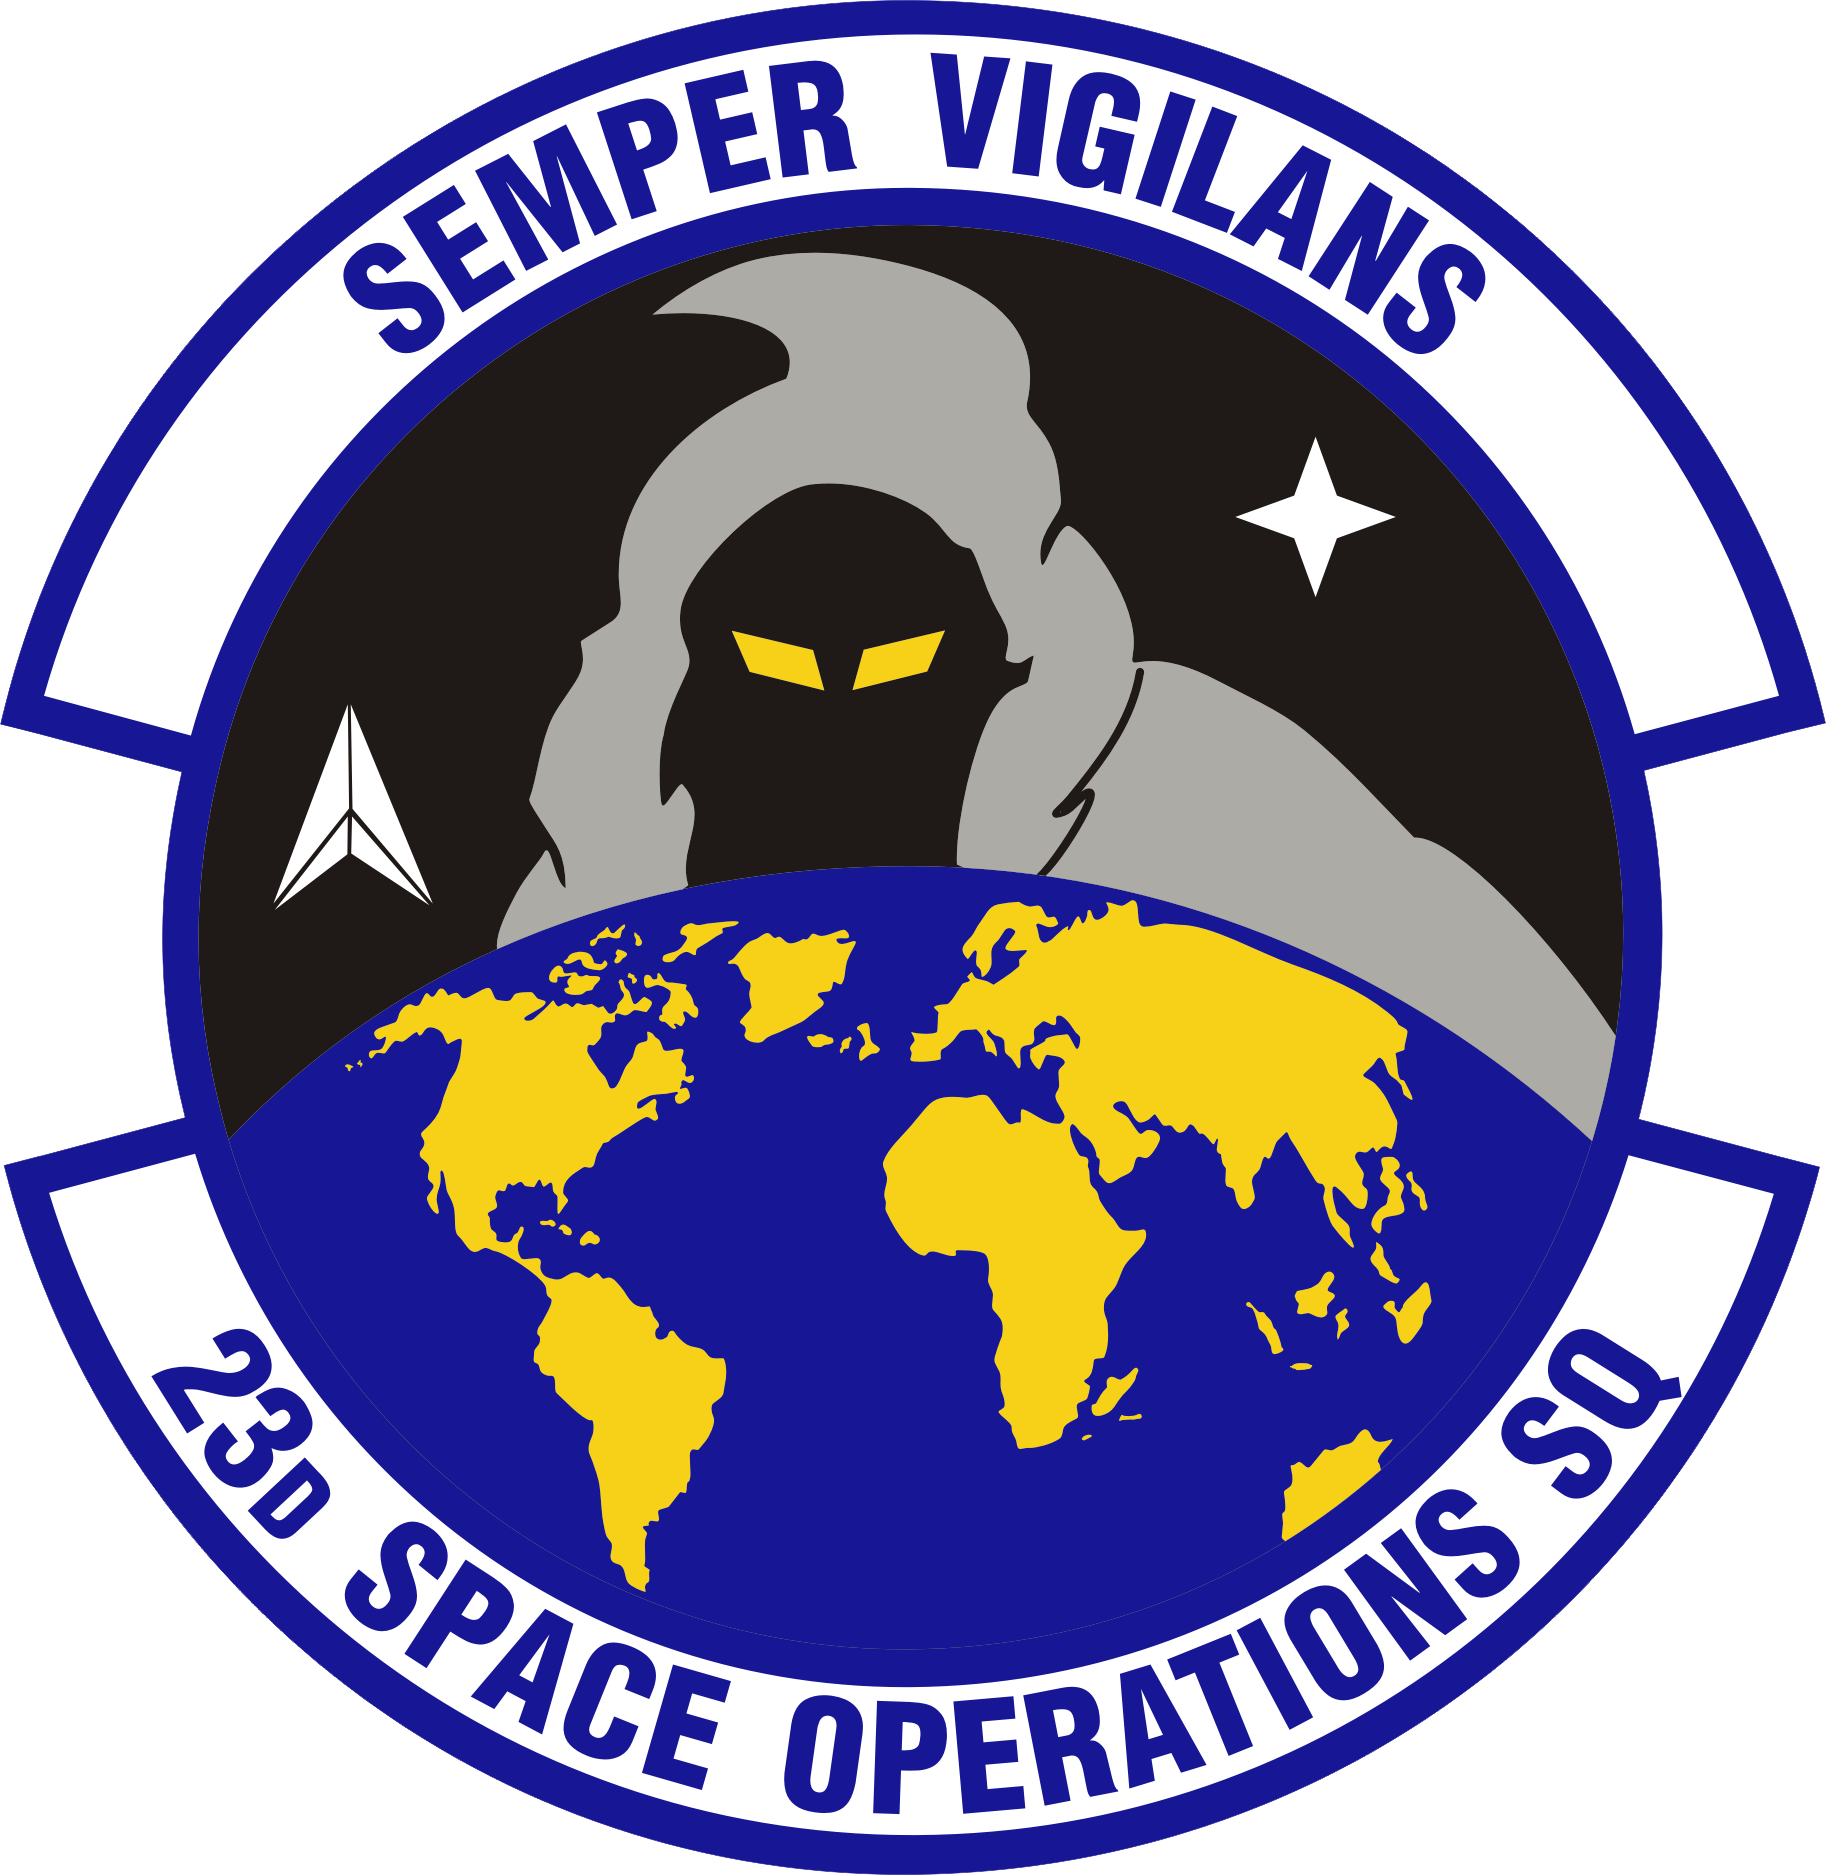 23rd Space Operations Squadron Wikipedia